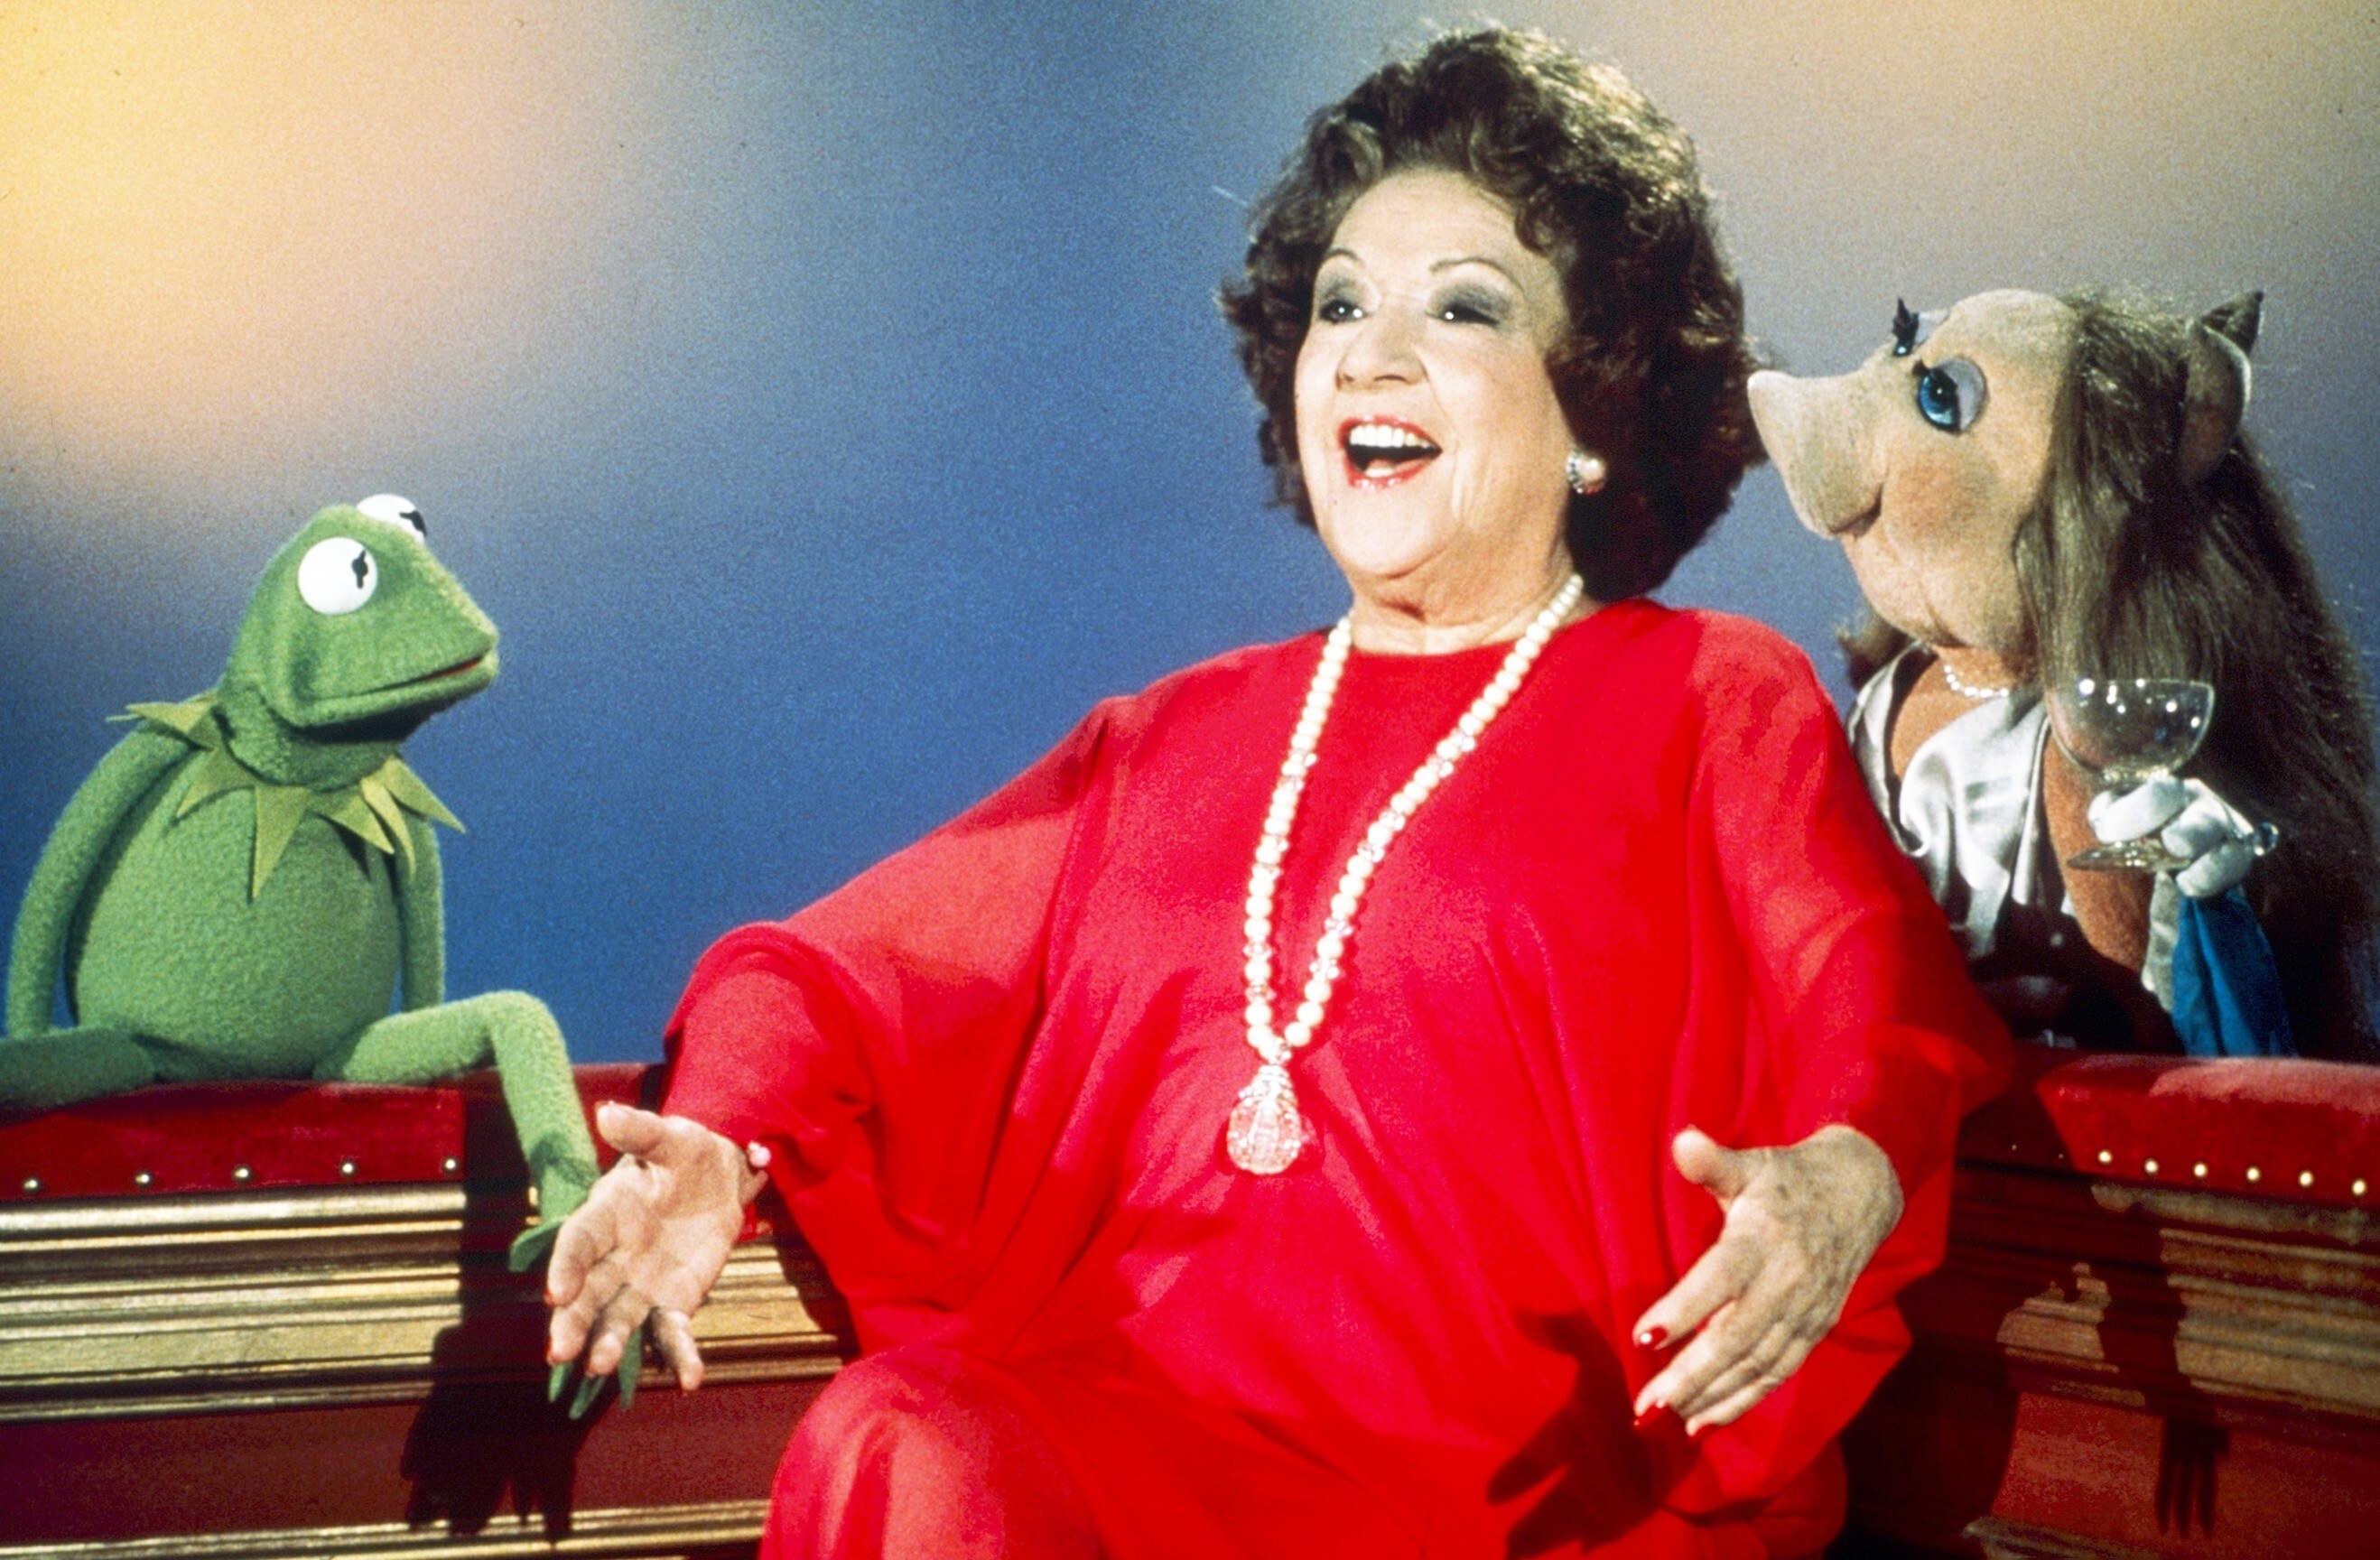 Kermit the Frog and Miss Piggy chat with Ethel Merman